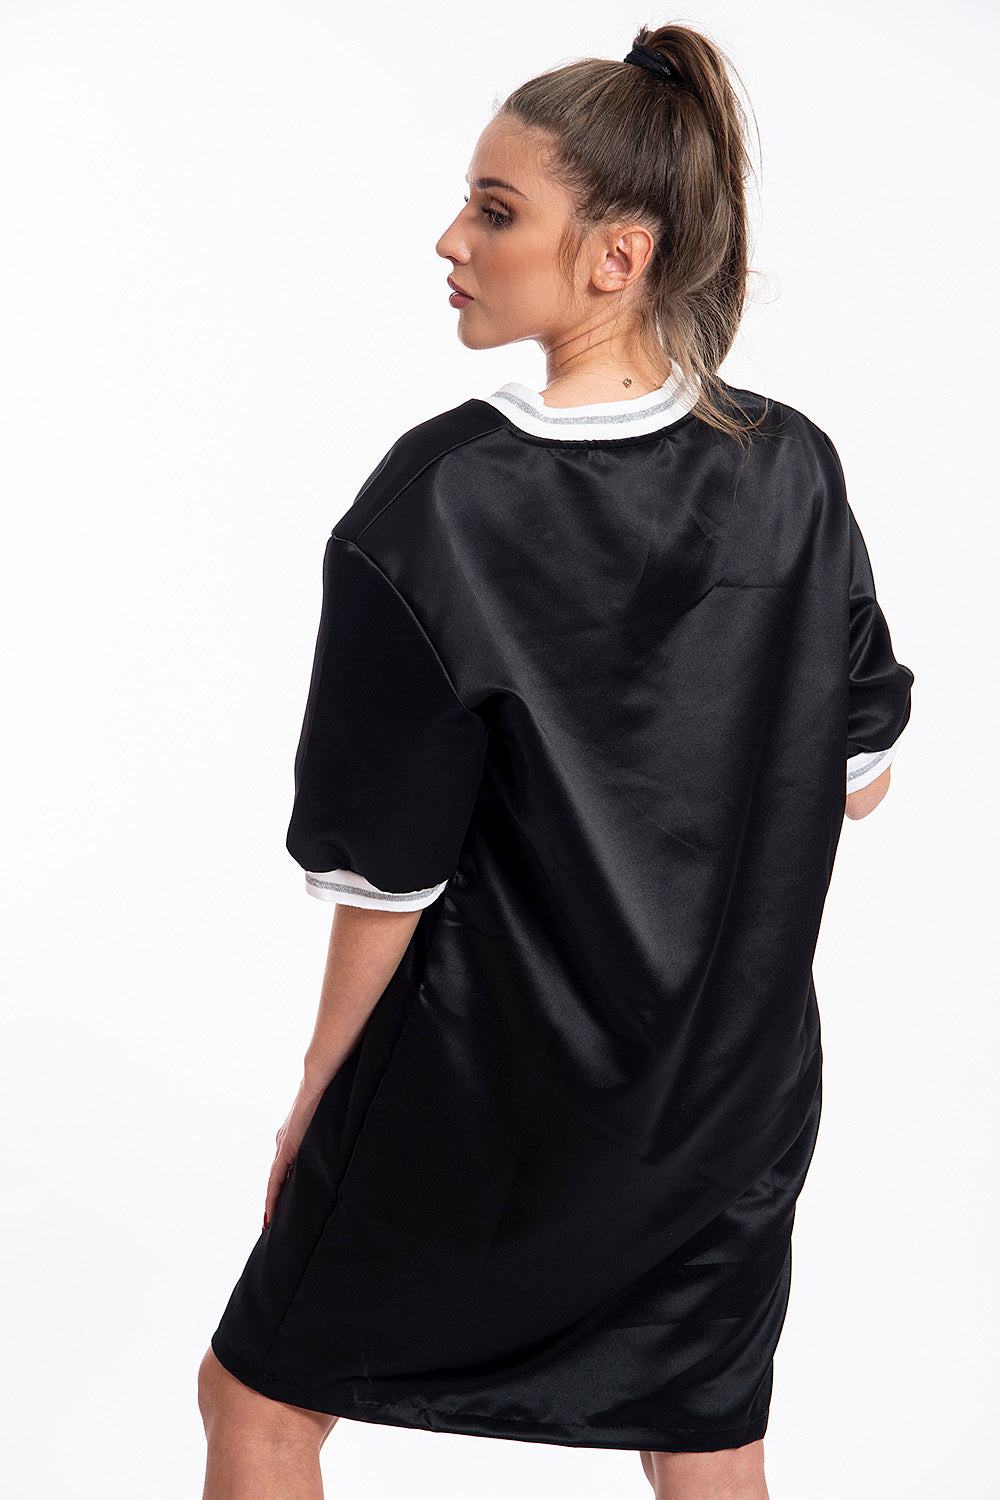 Comme des Fuckdown oversized mesh t-shirt dress